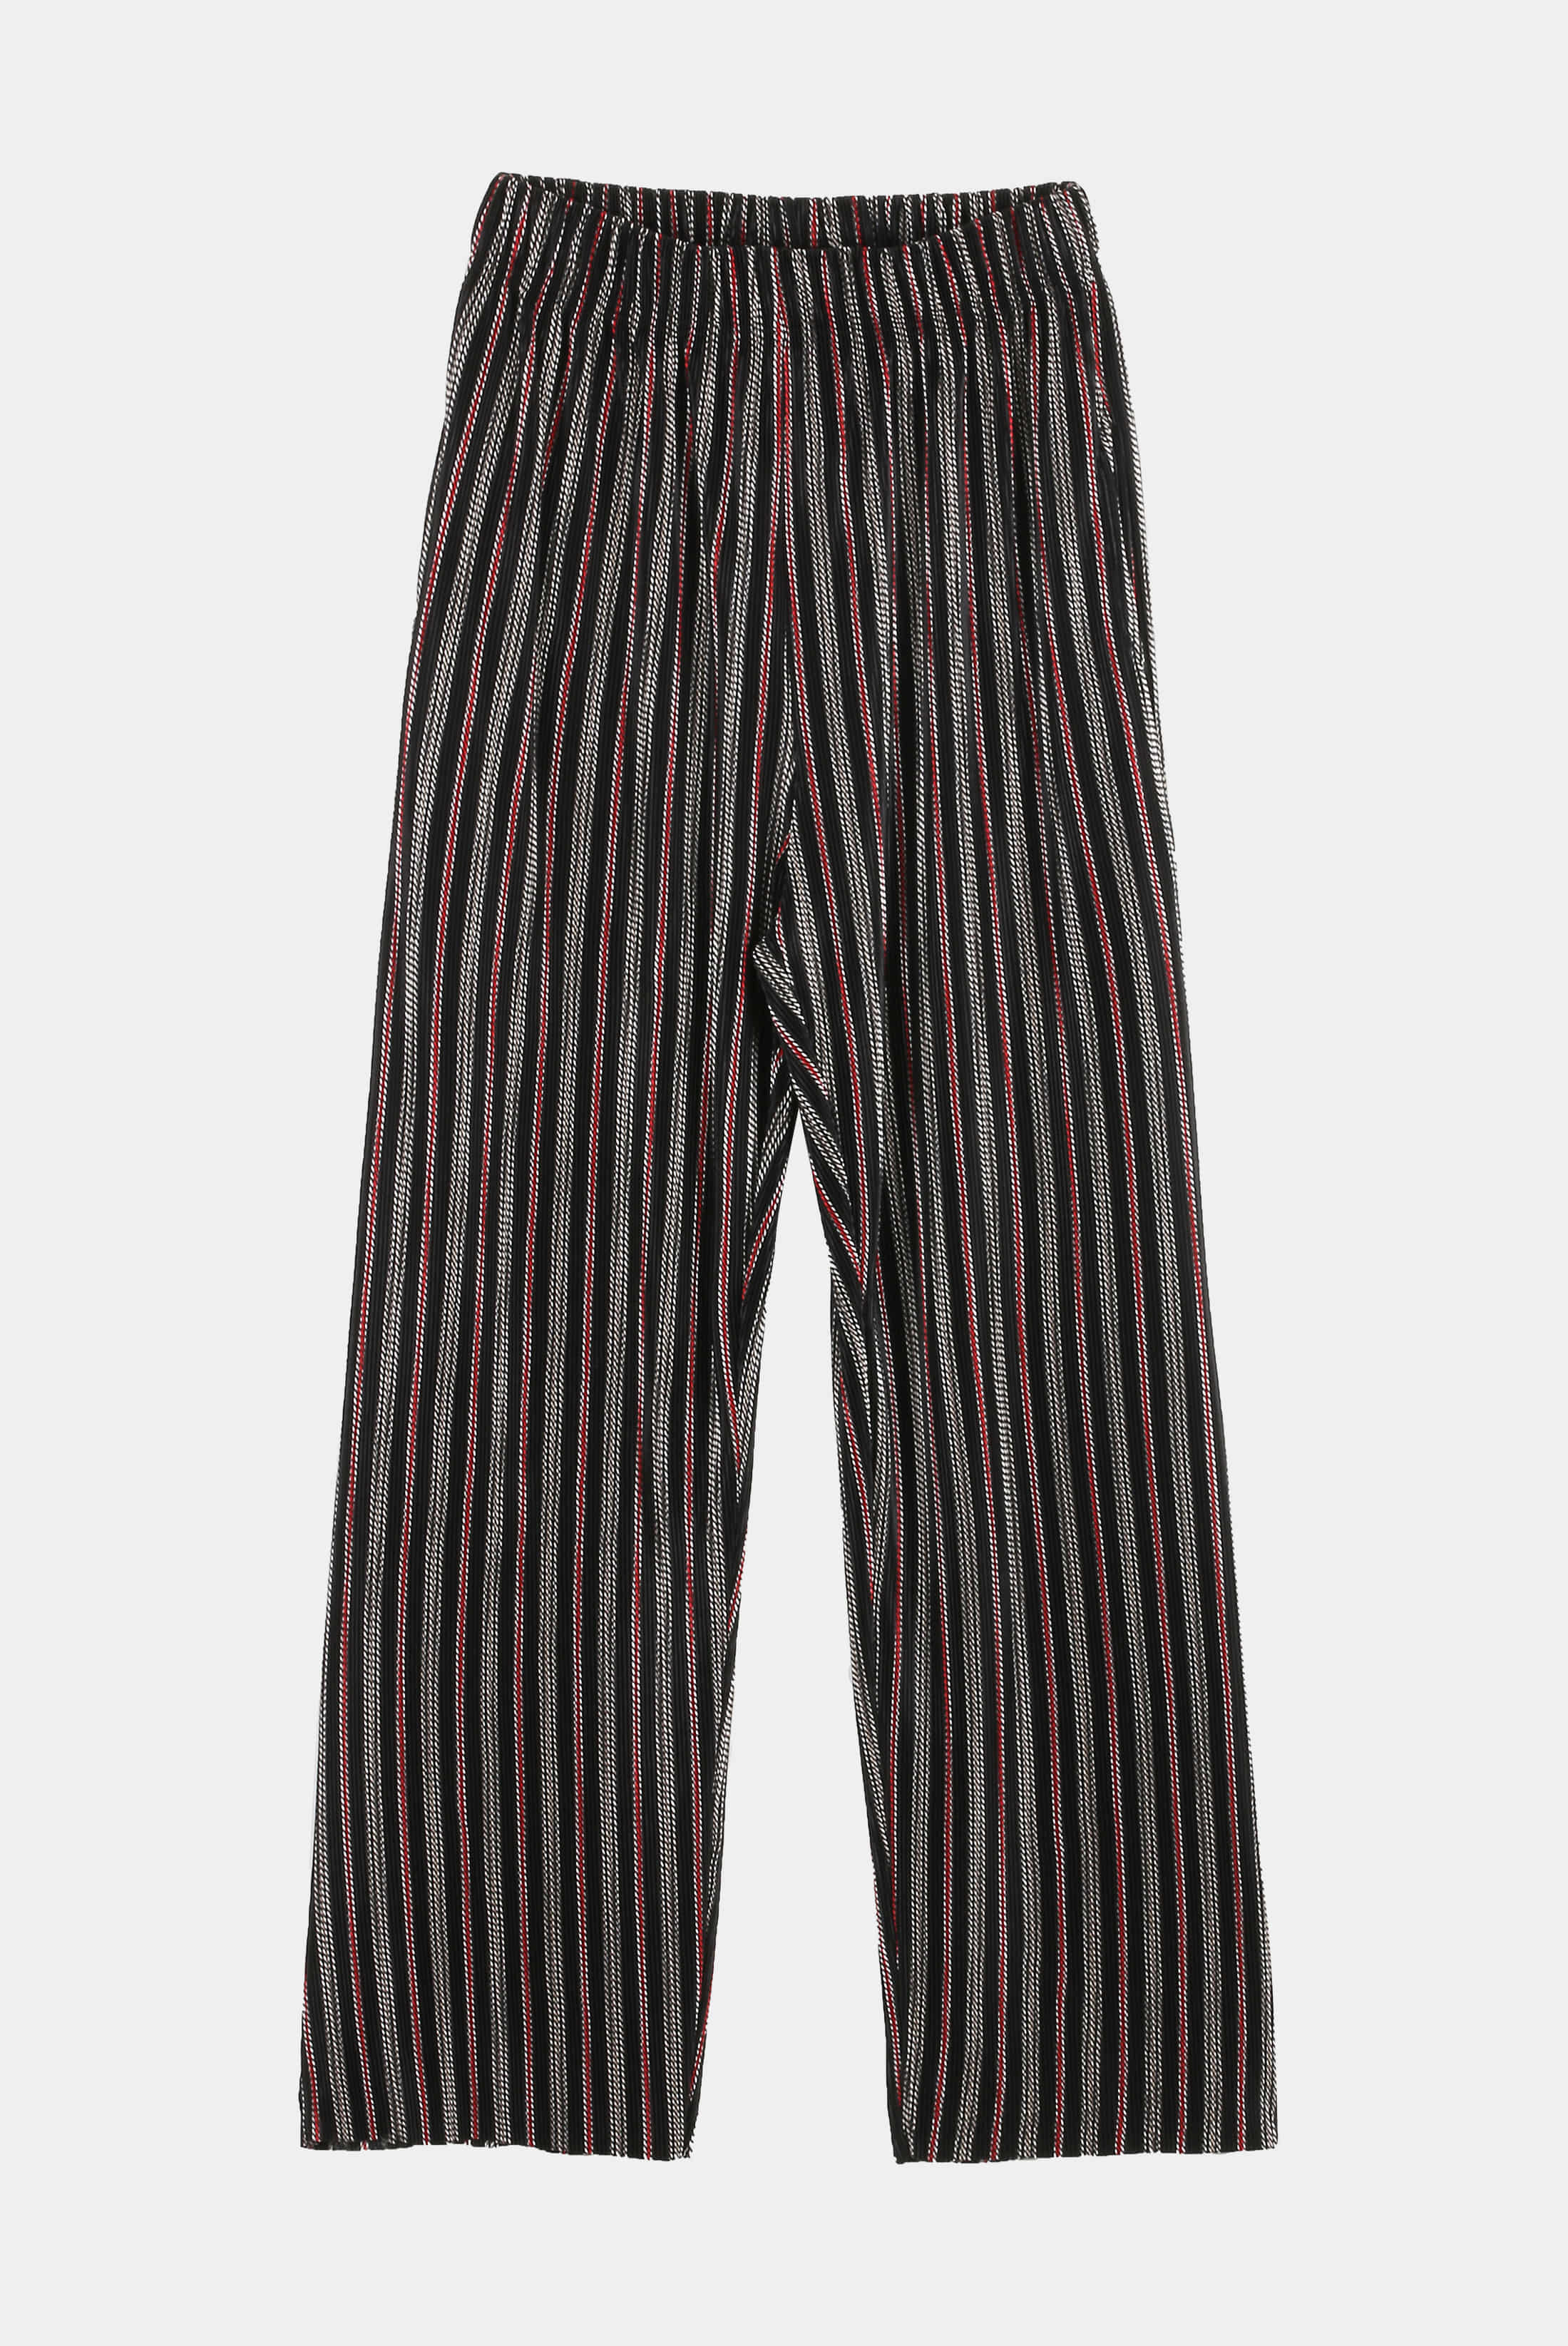 Rope_Pleats Pants